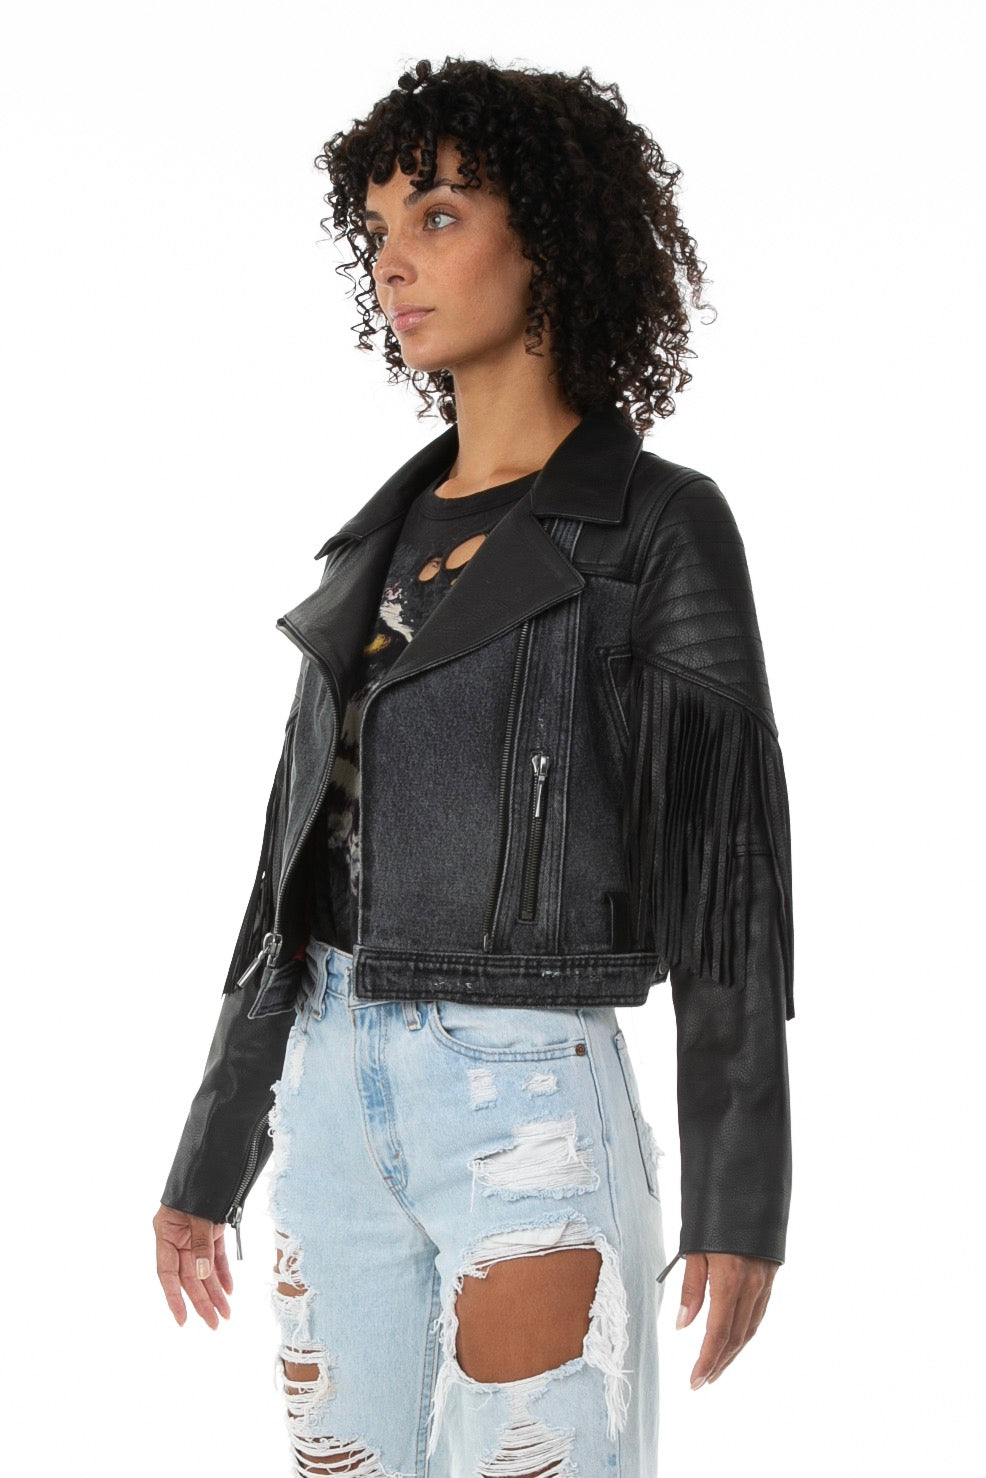 Side of female model wearing La Matadora leather jacket